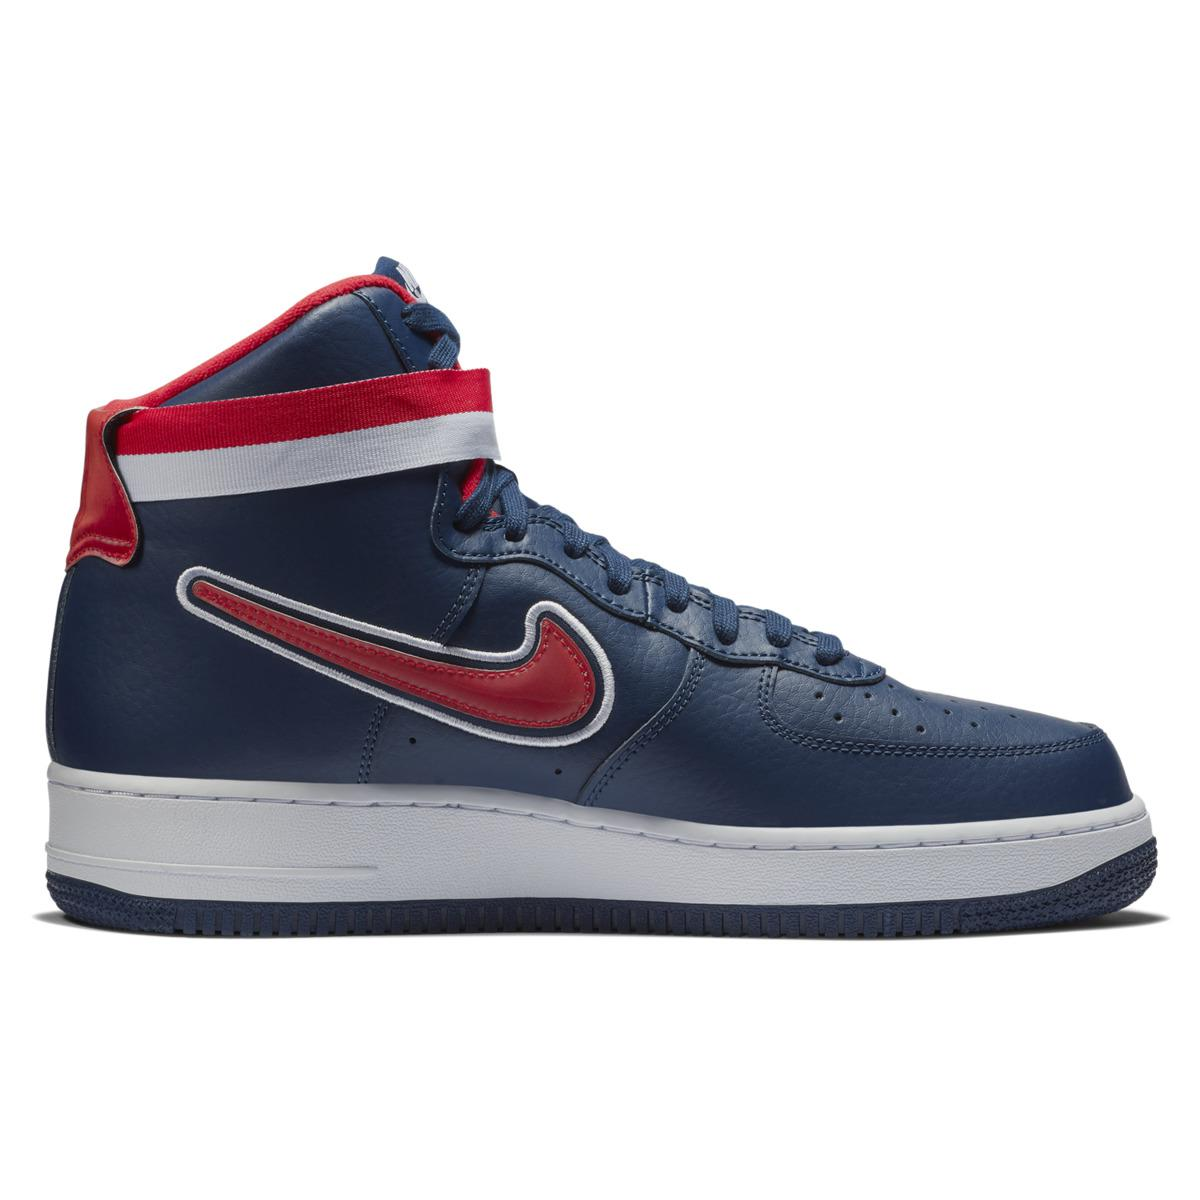 Nike Leather Air Force 1 High 07 Lv8 Sport Casual Trainers